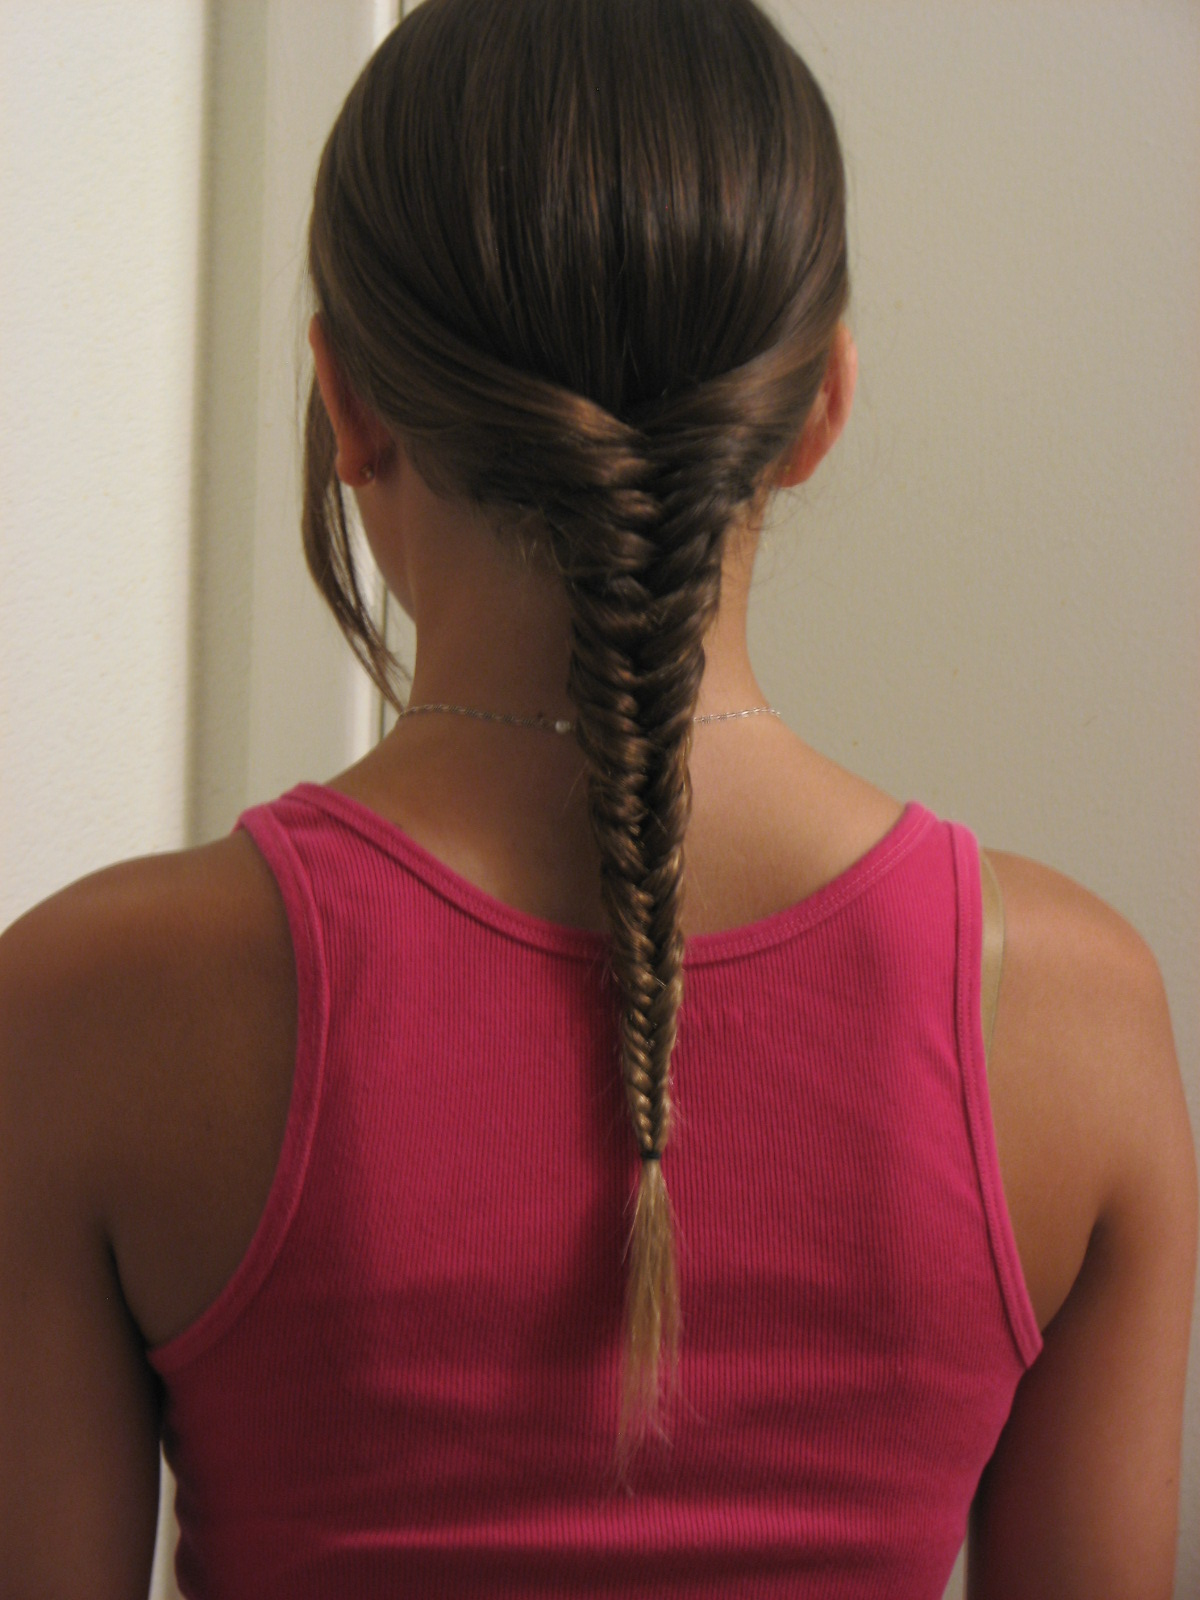 Hair Tutorial: Fishtail Braiding